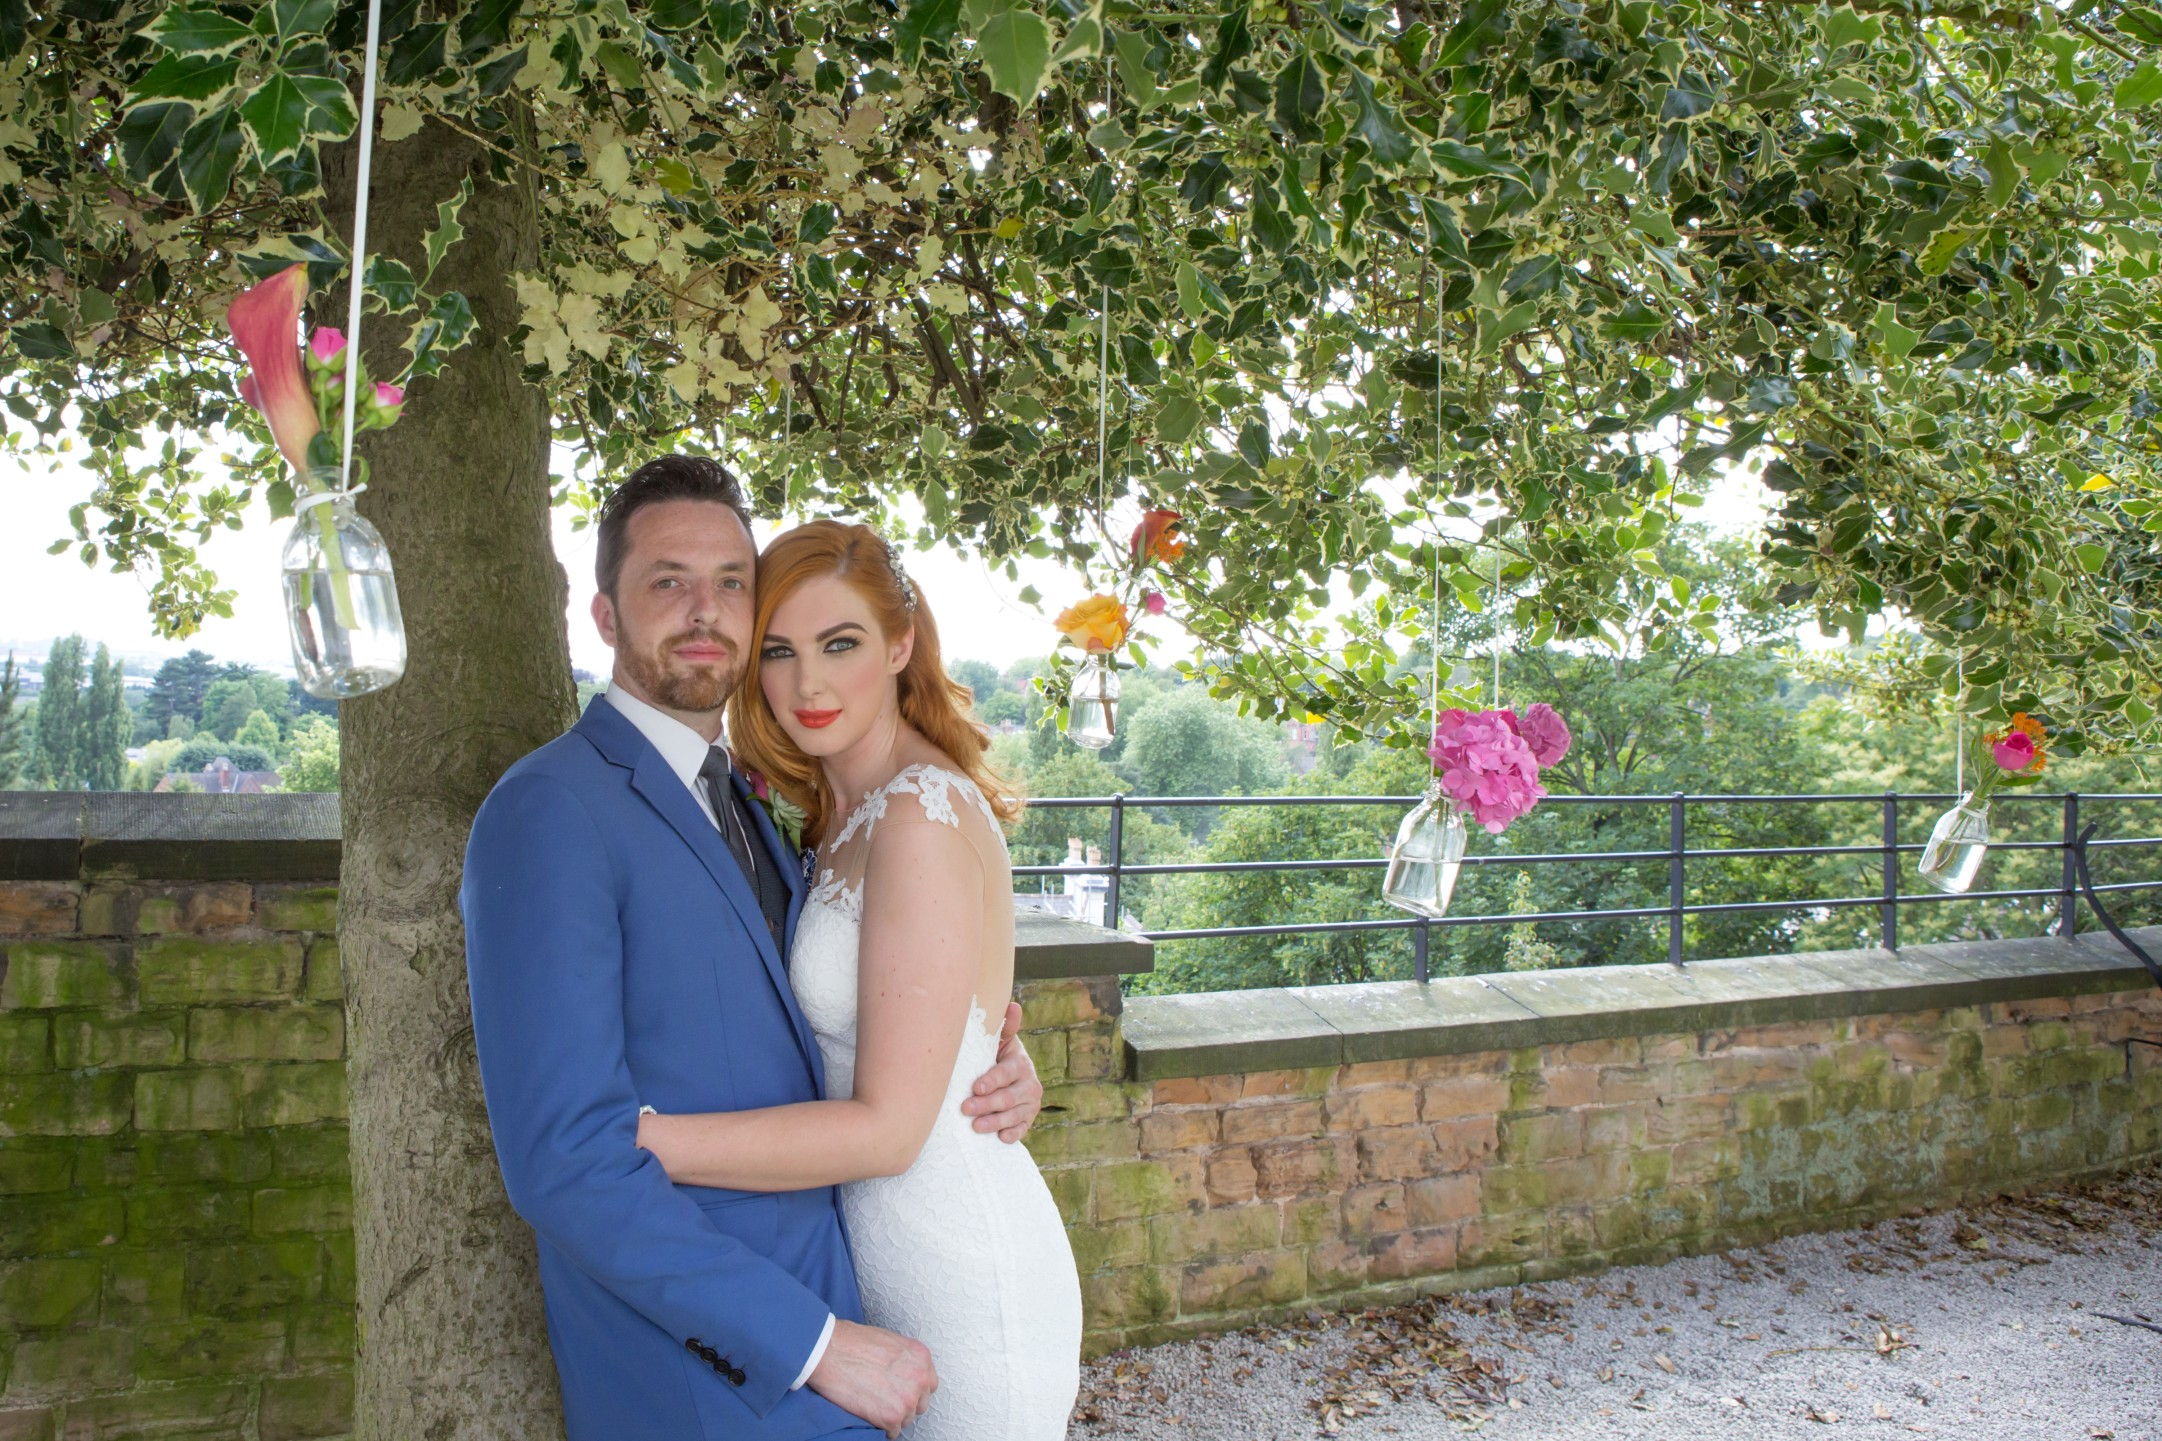 a colourful wedding in the gardens of harts nottingham - pink wedding - alternative wedding